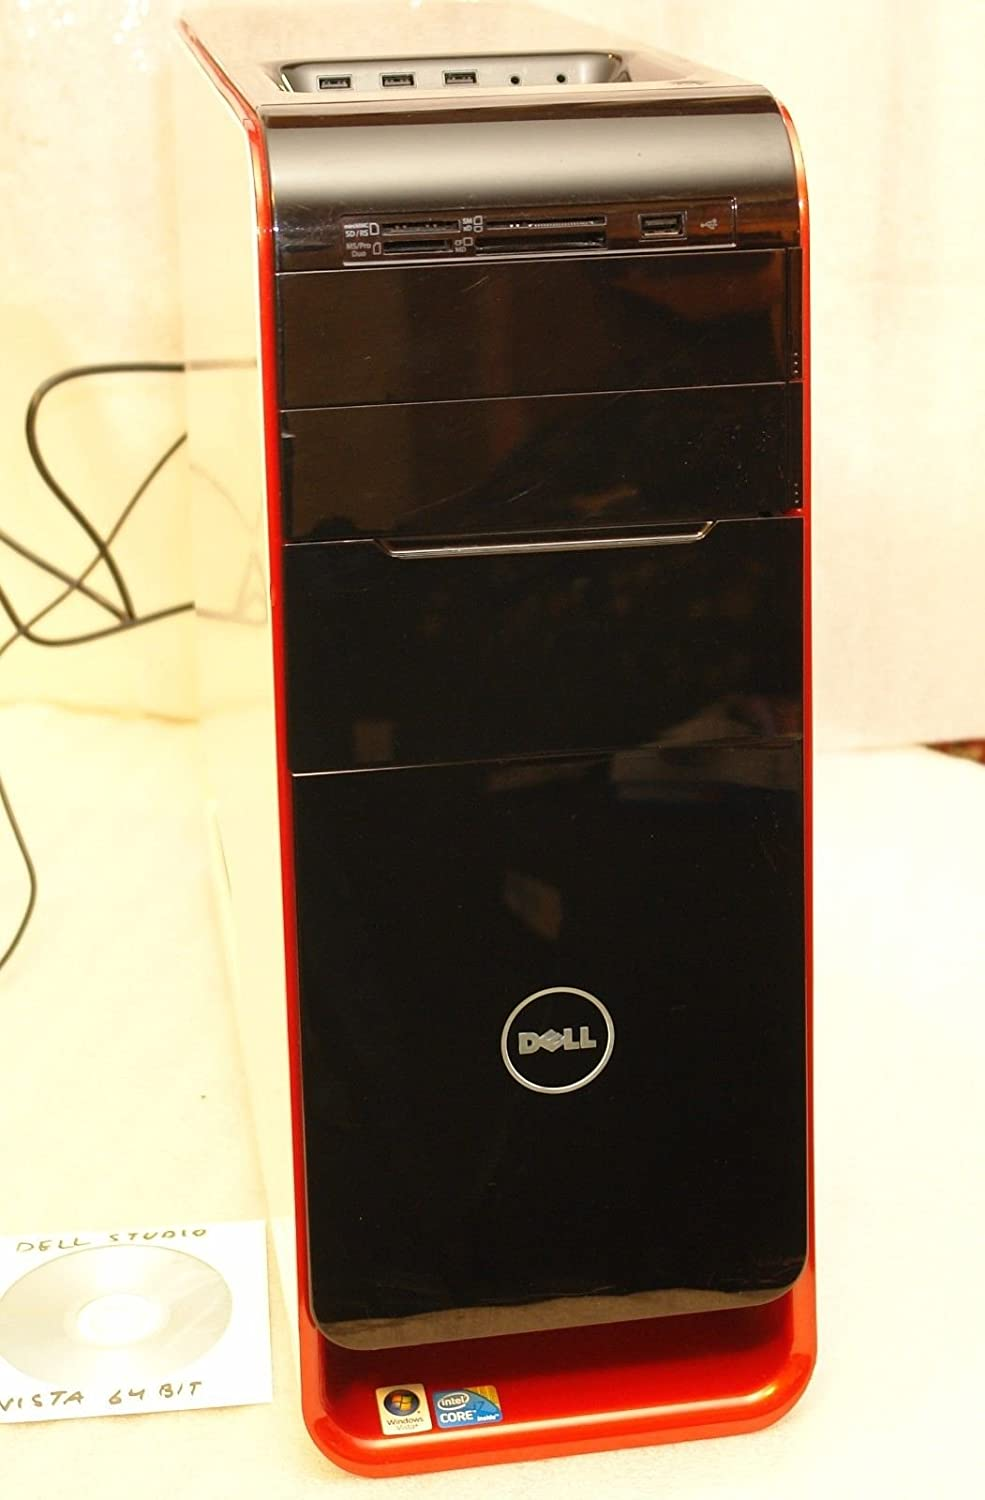 Dell Studio XPS 435T